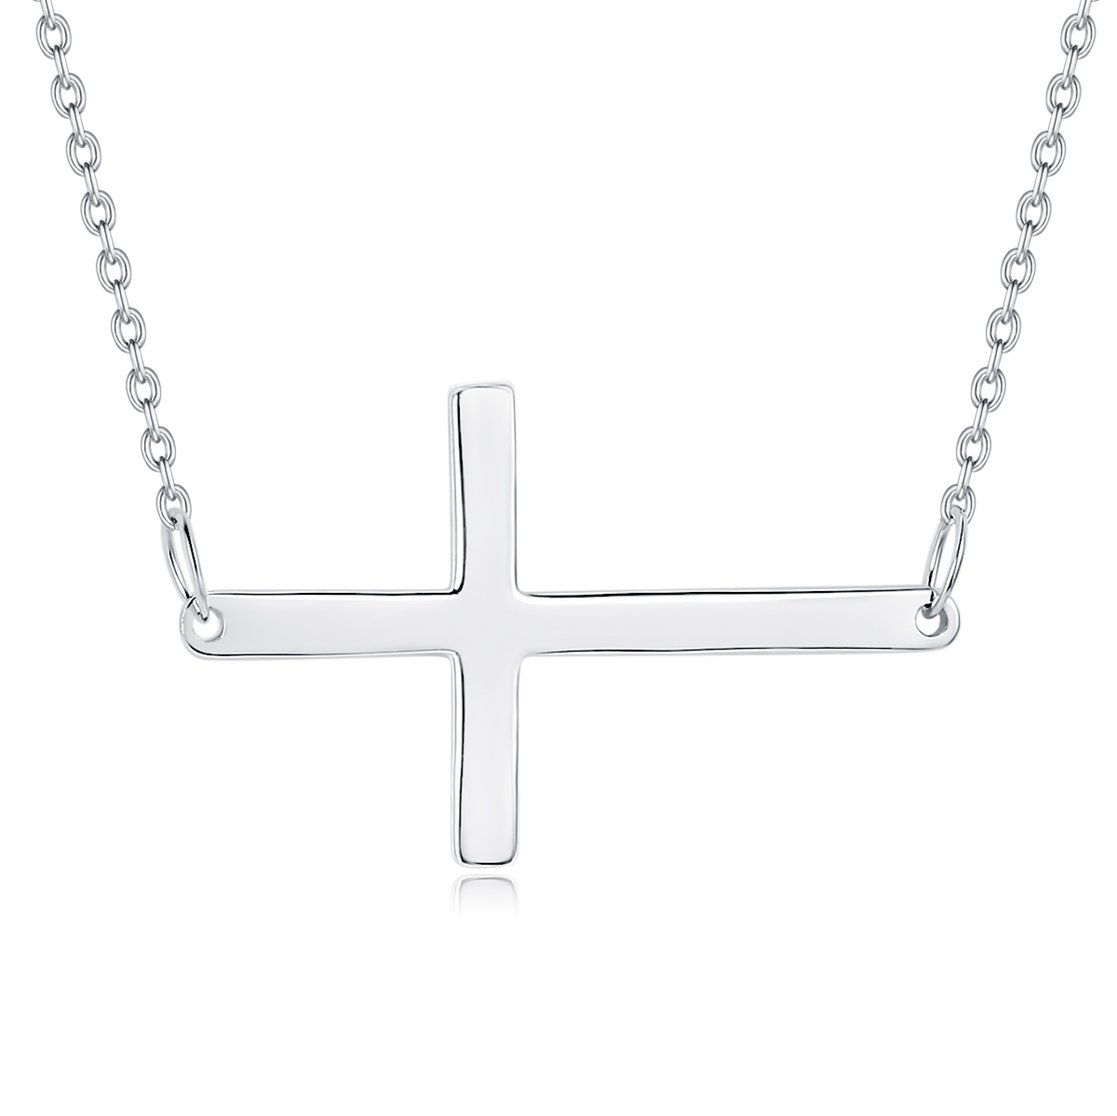 Fine Jewelry Sterling Silver Christian Cross Latin Cross Charm Pendant Necklace, 18 inches